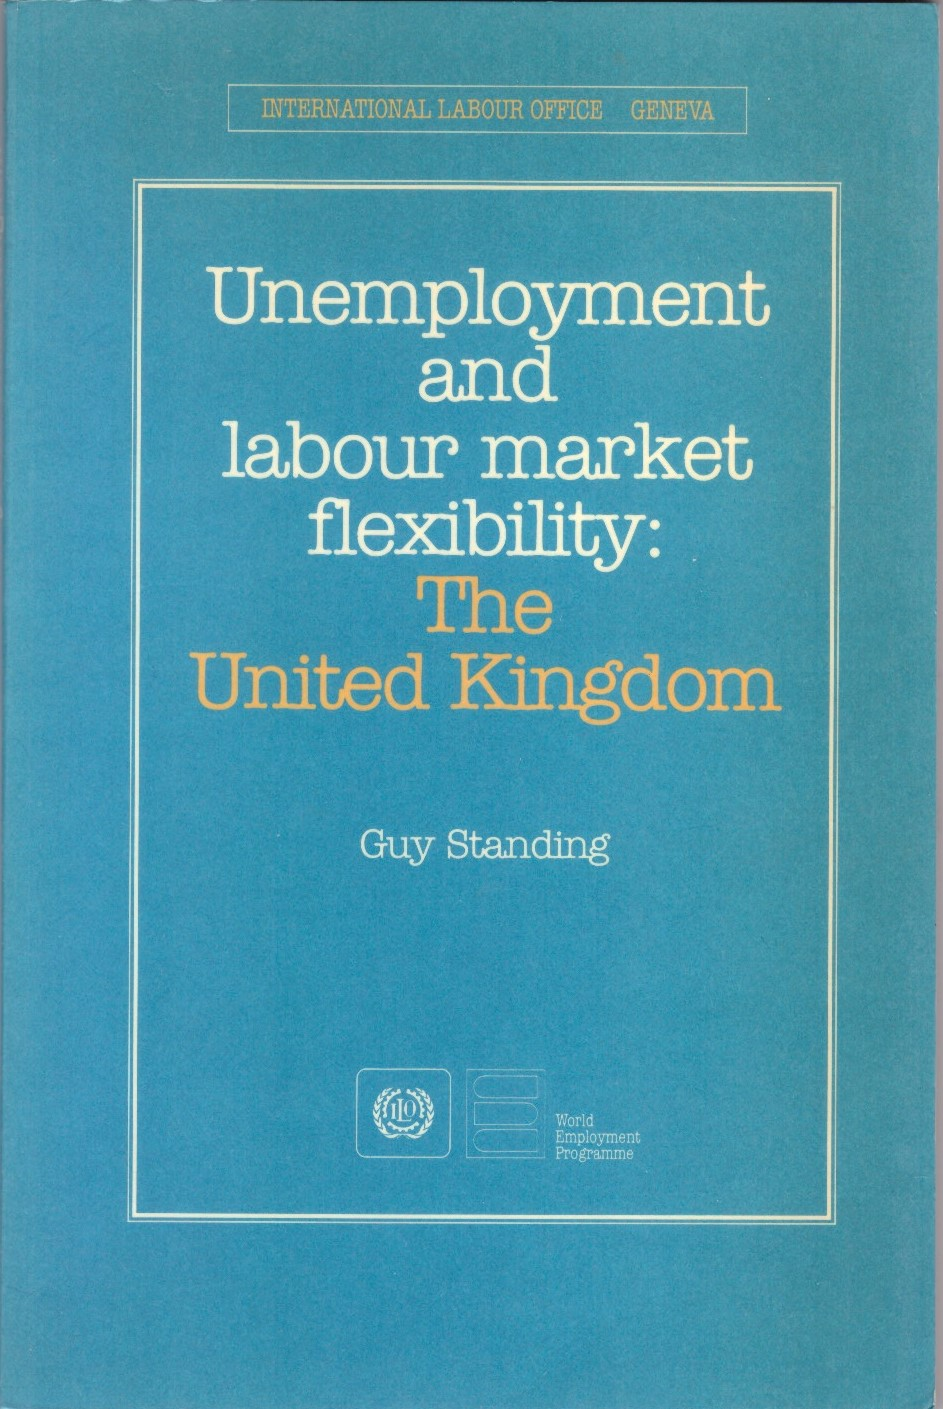 Unemployment and Labour Market Flexibility: The United Kingdom  (Geneva: ILO, 1986).    Translations    ●    Details